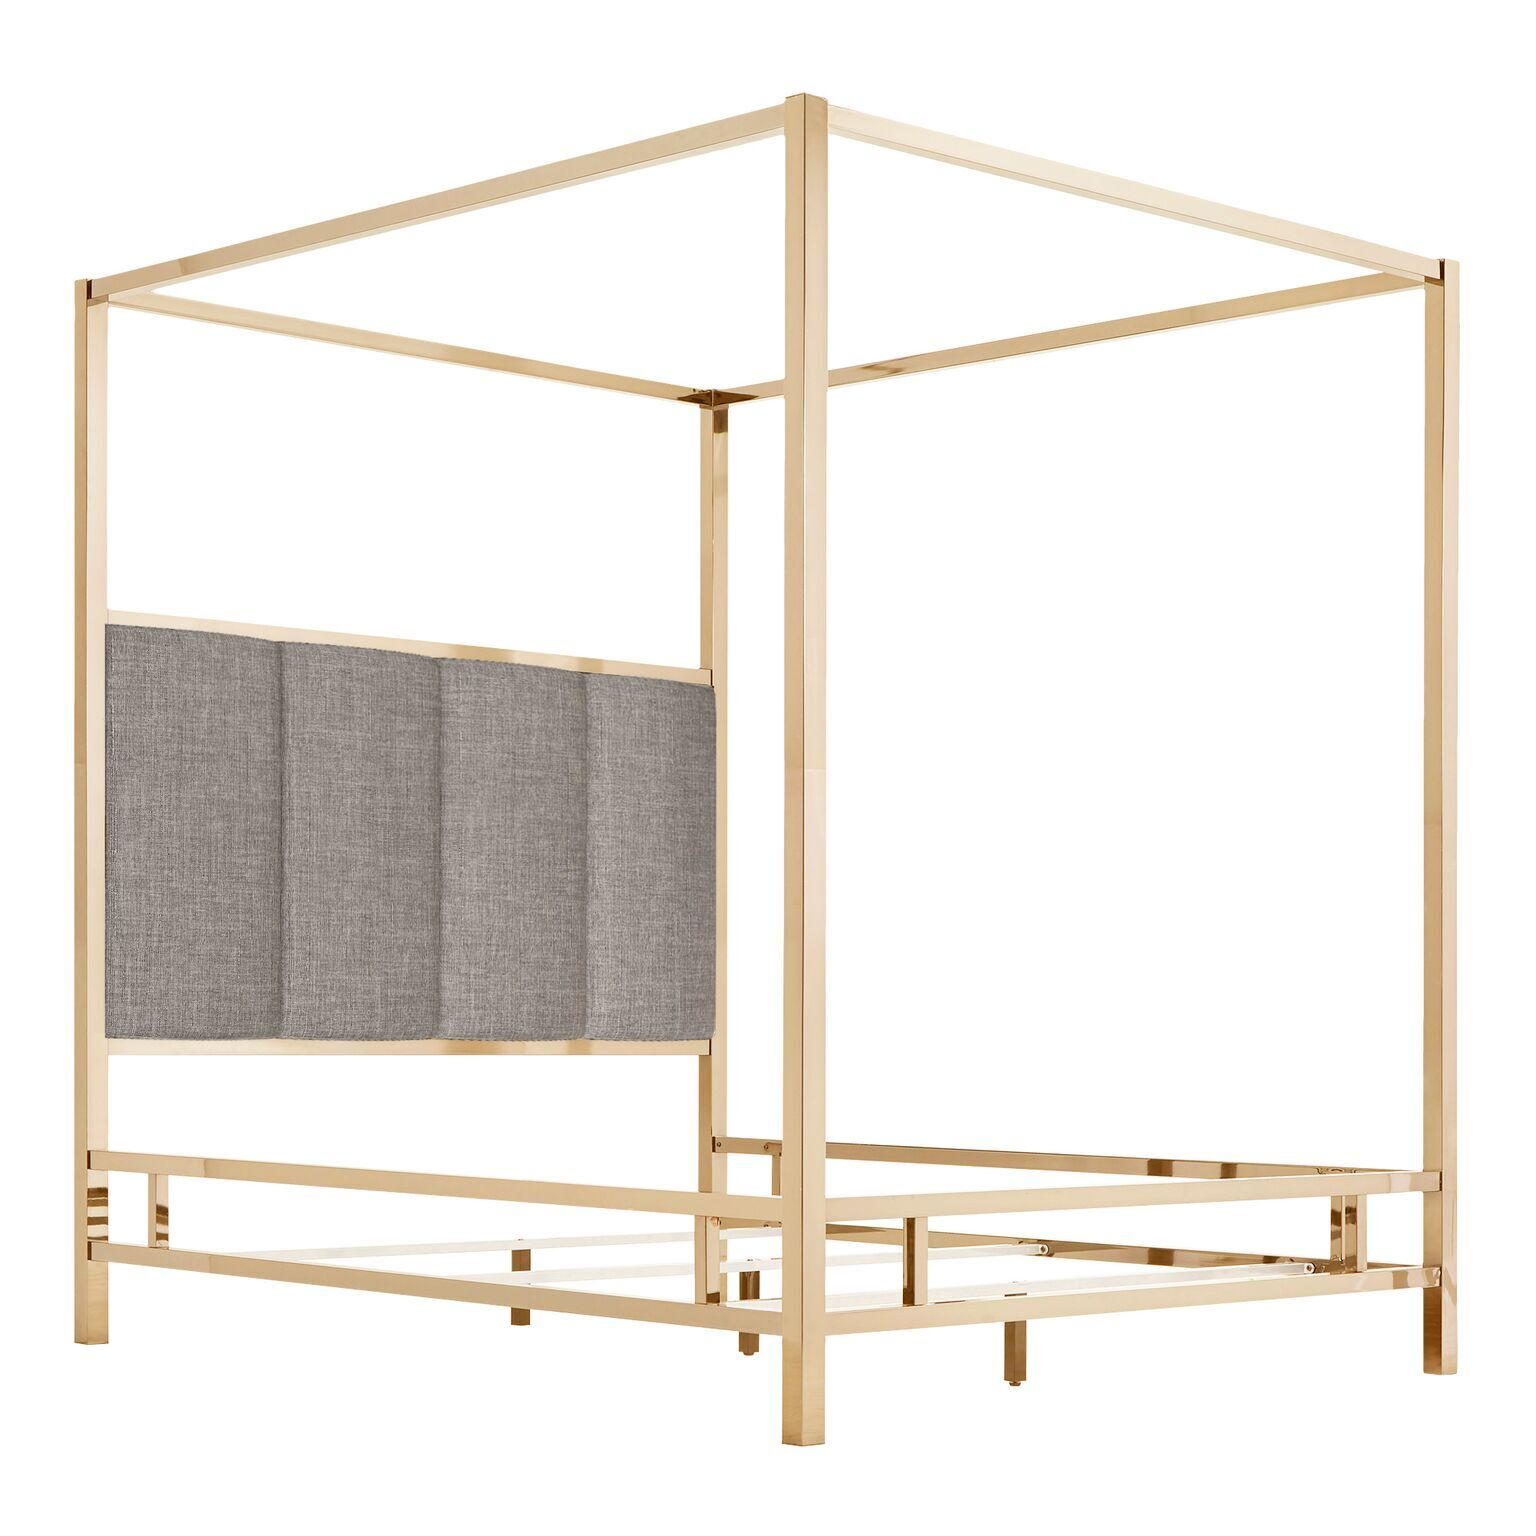 Wicklund Upholstered Canopy Bed Color (Frame/Headboard): Champagne Gold/Gray, Size: King